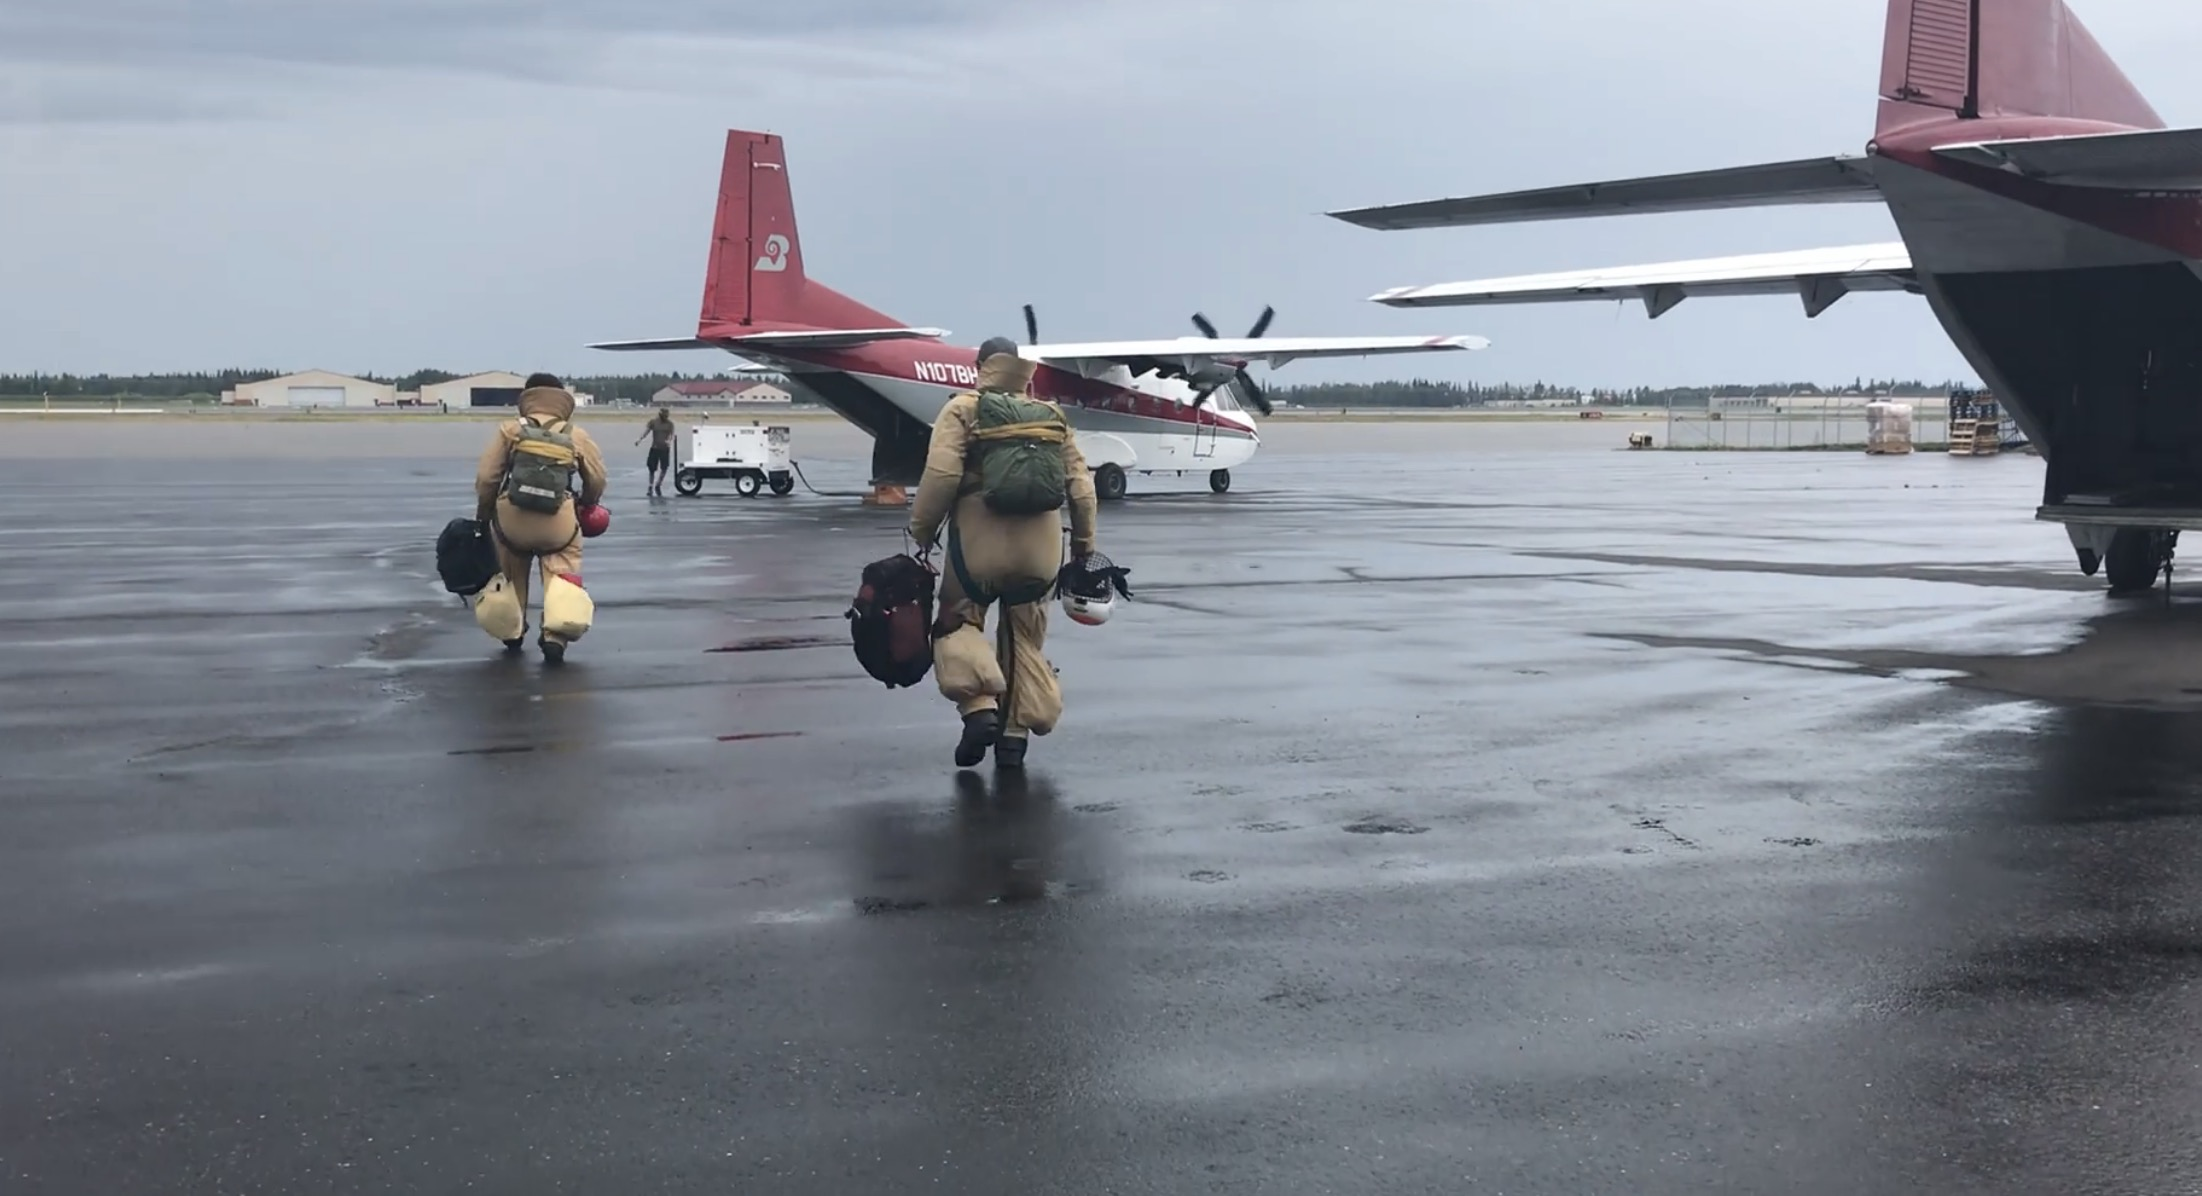 Smokejumpers board their aircraft